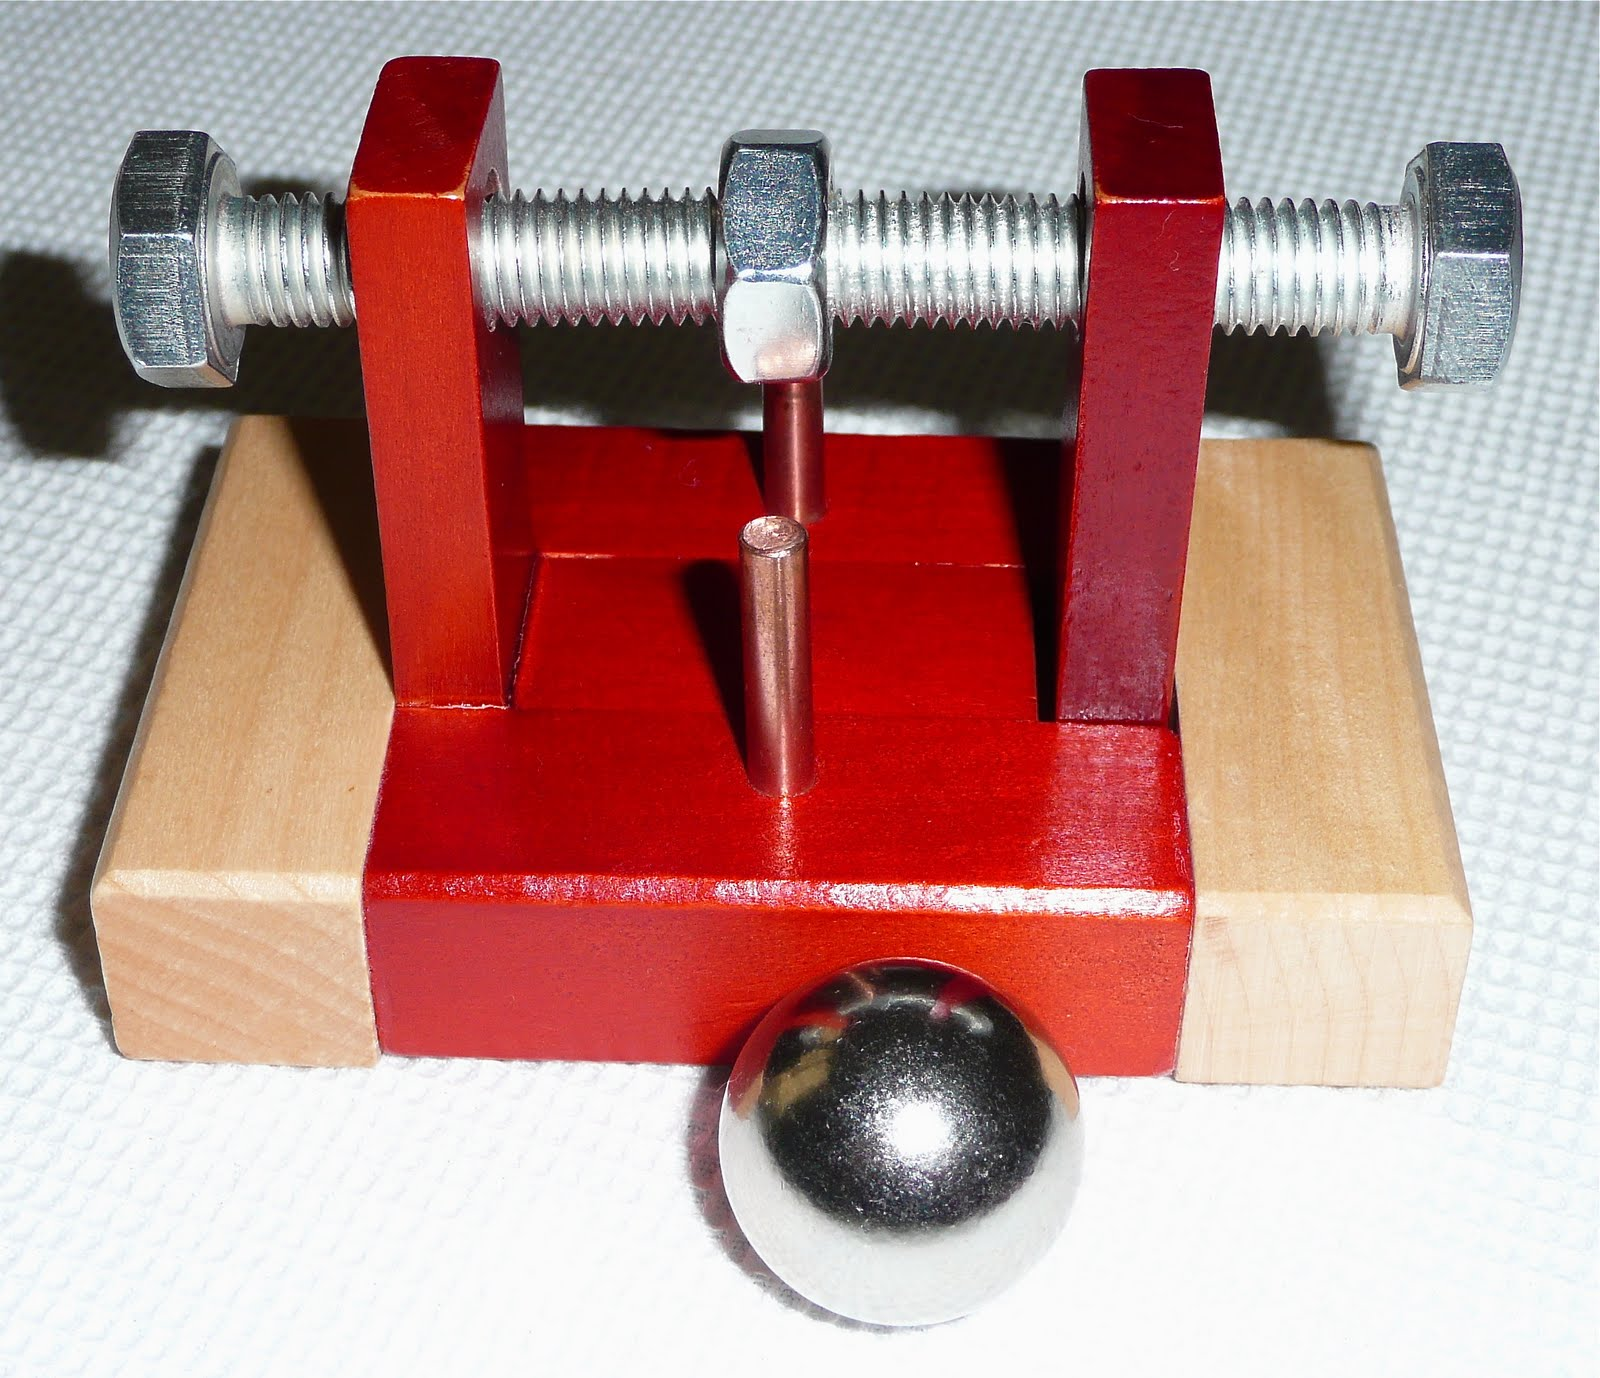 PuzzleMad: Bolted Closed